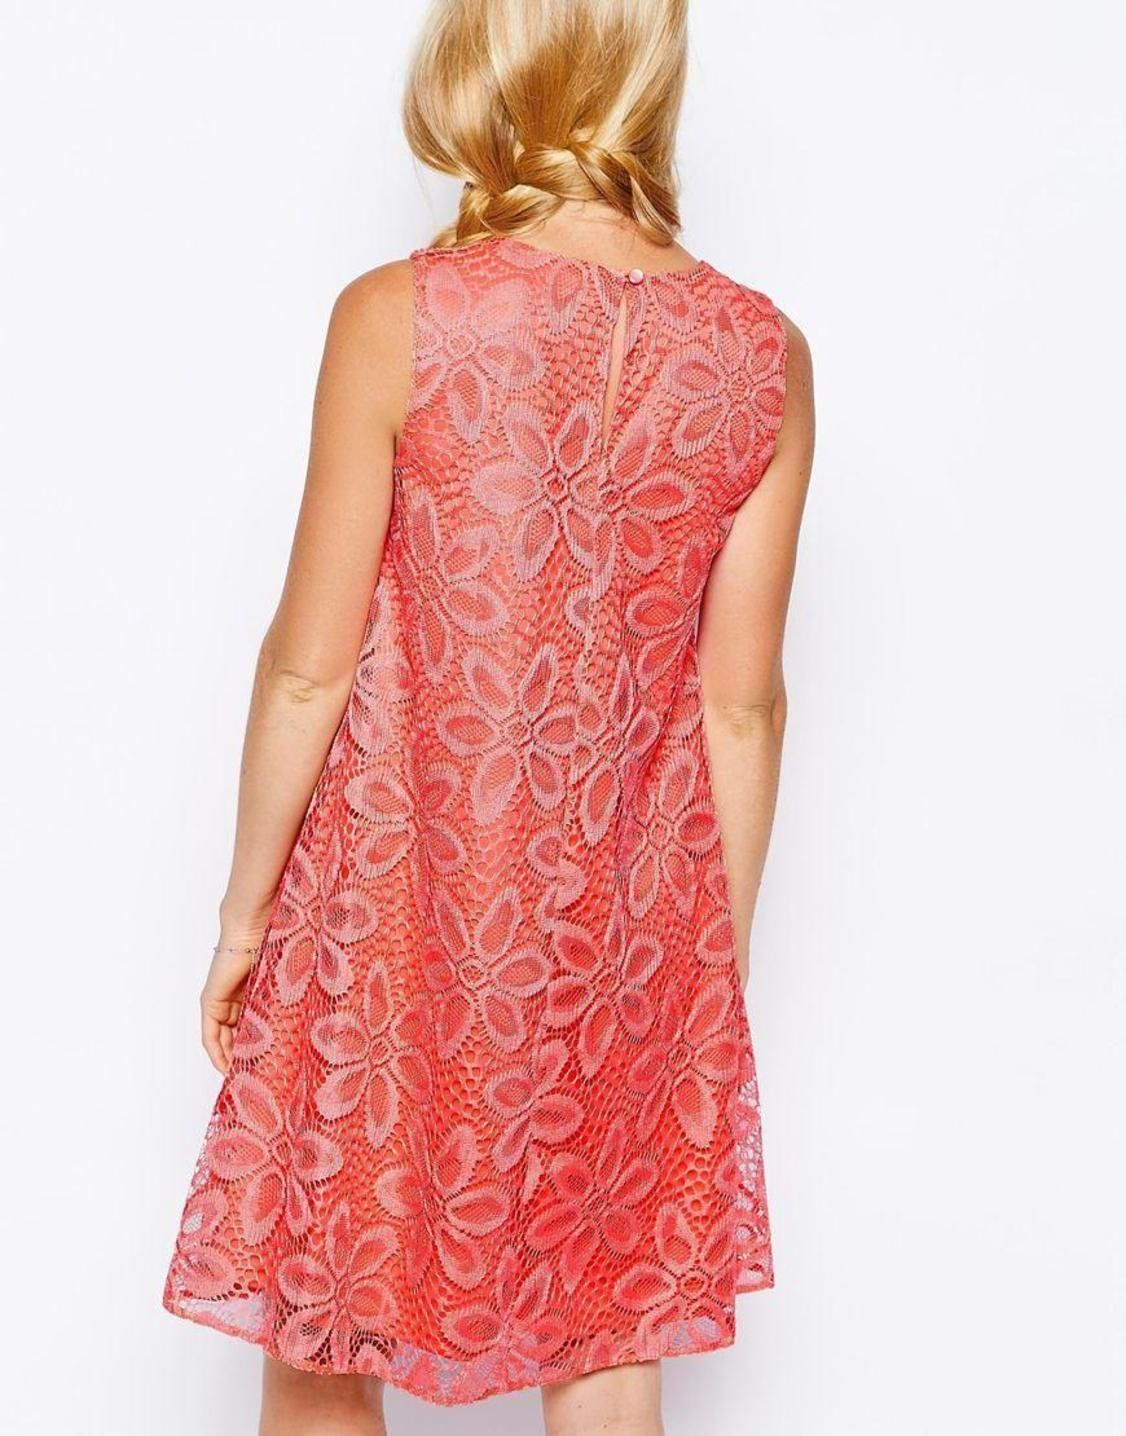 02647912f04 ASOS Maternity Swing Dress In Big Flower Lace http   picvpic.com